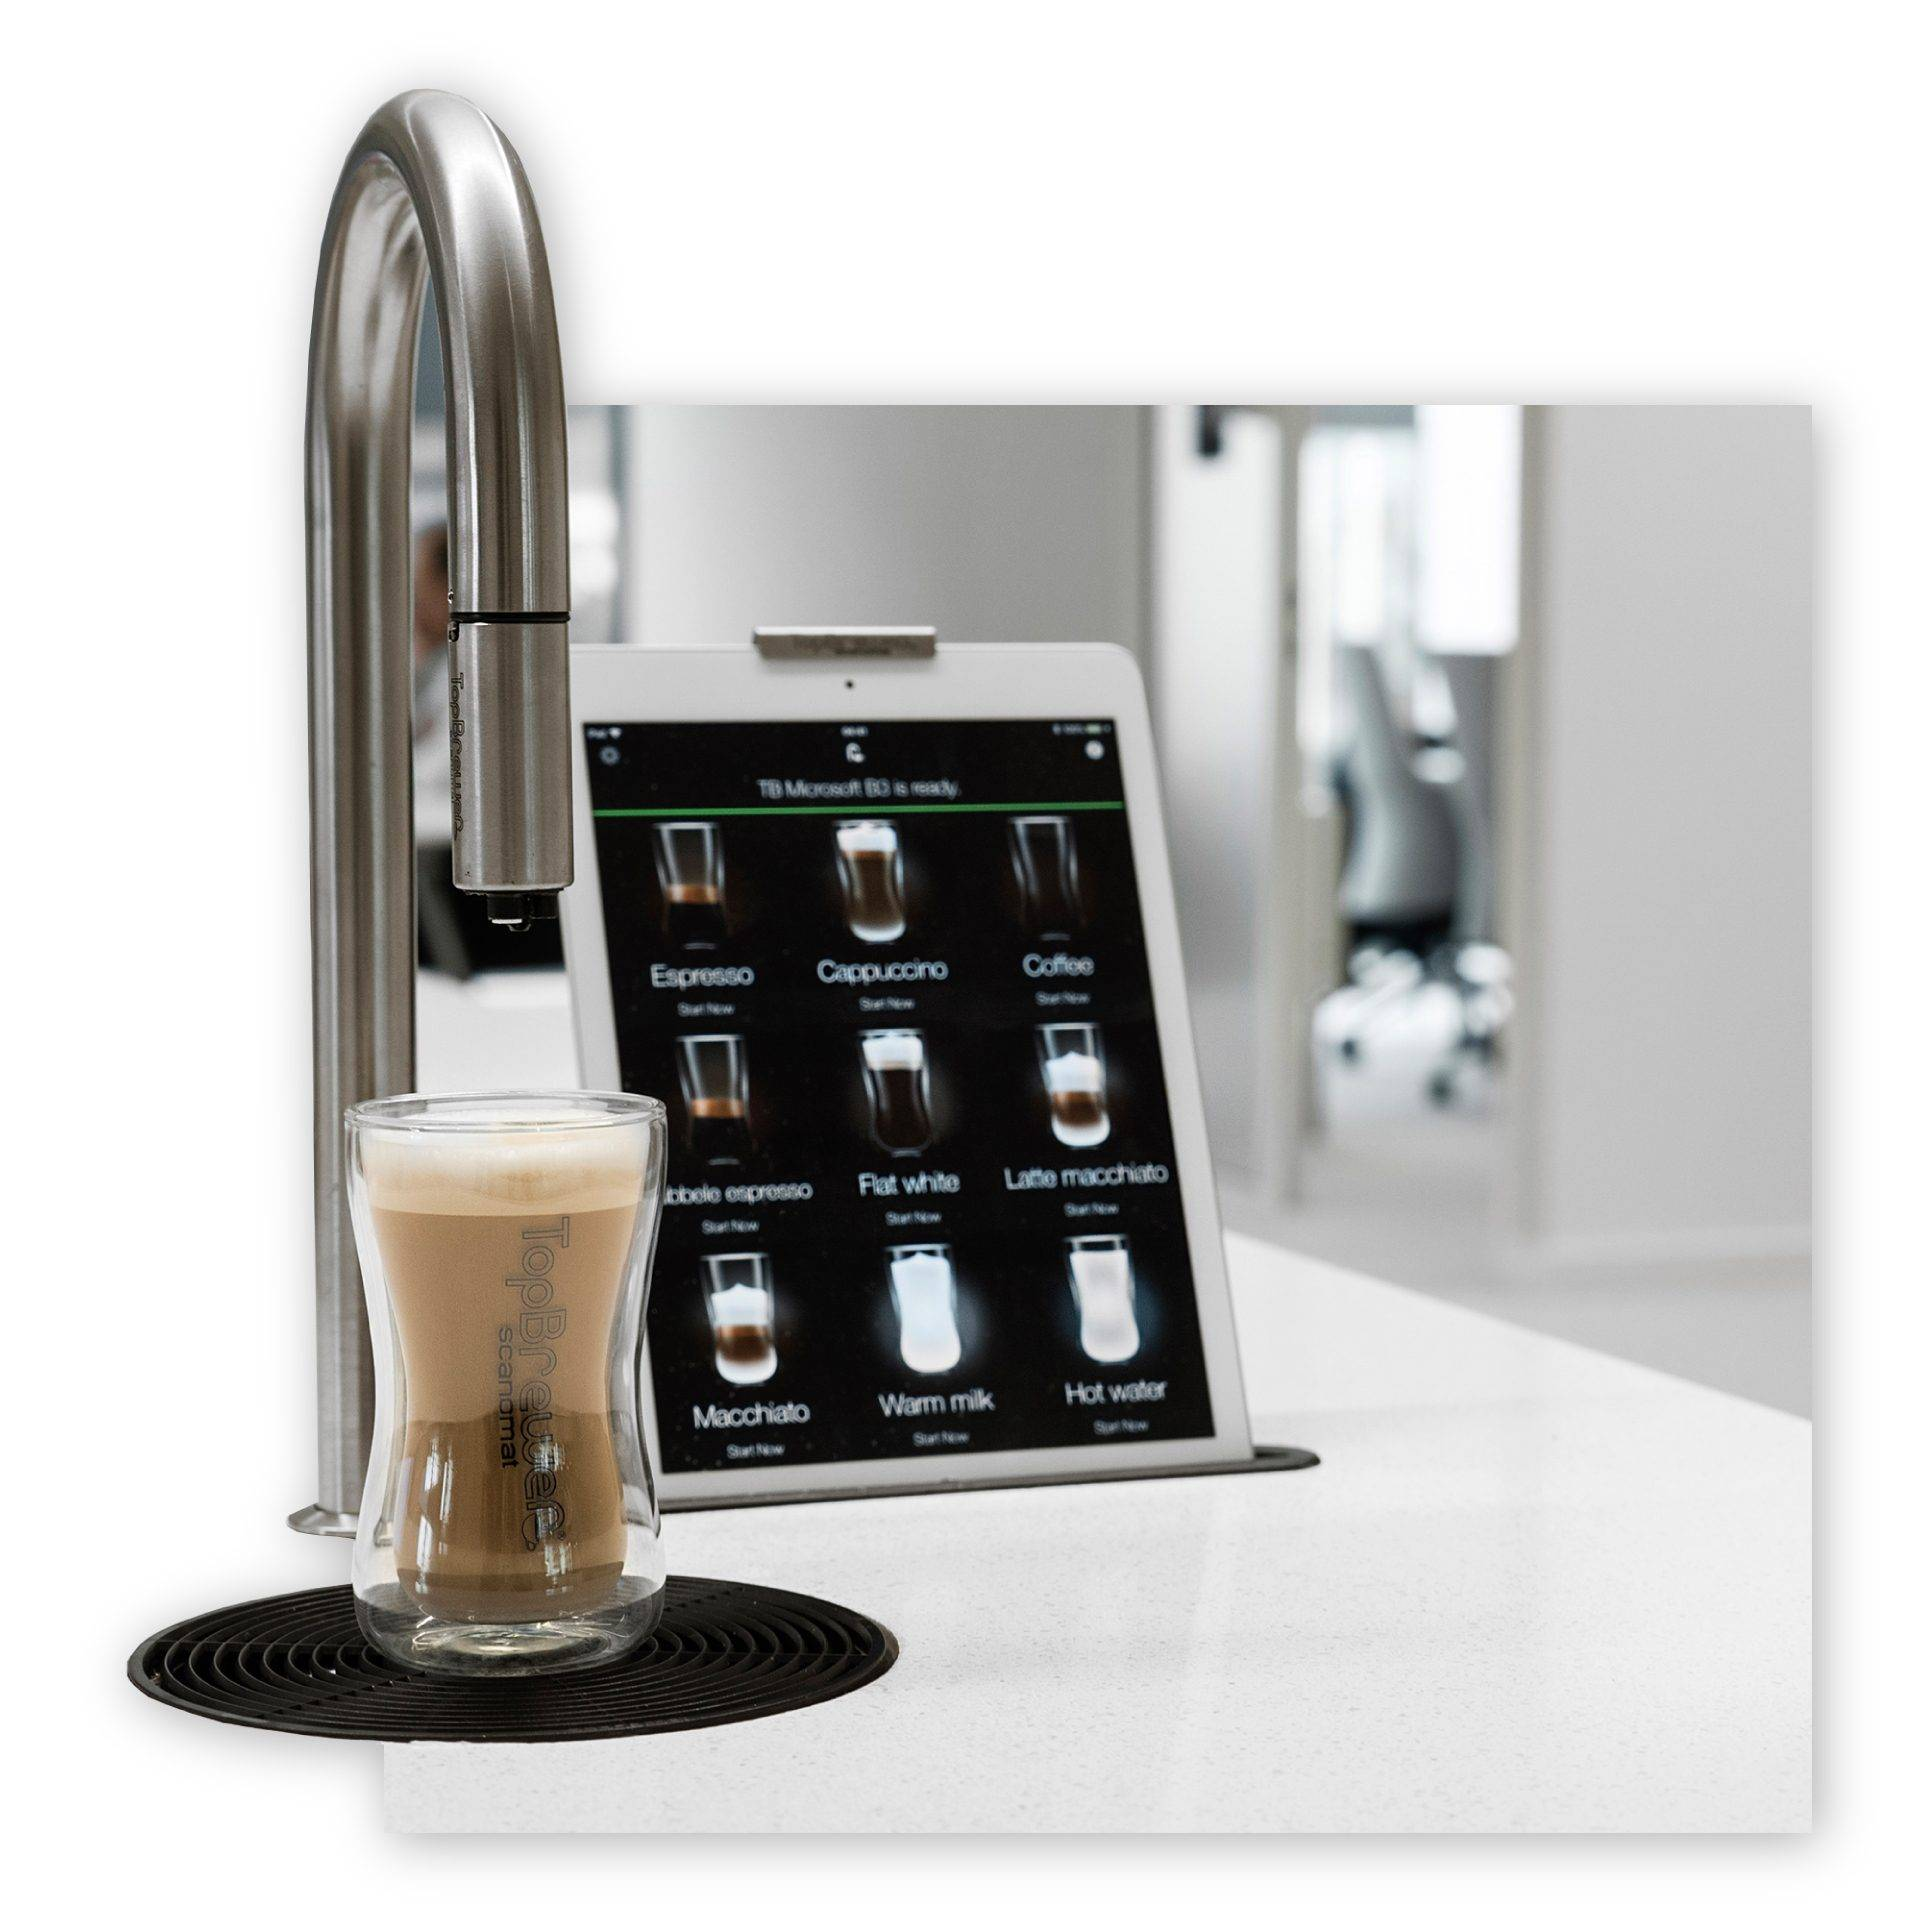 Topbrewer - Scanomat - Technoliving